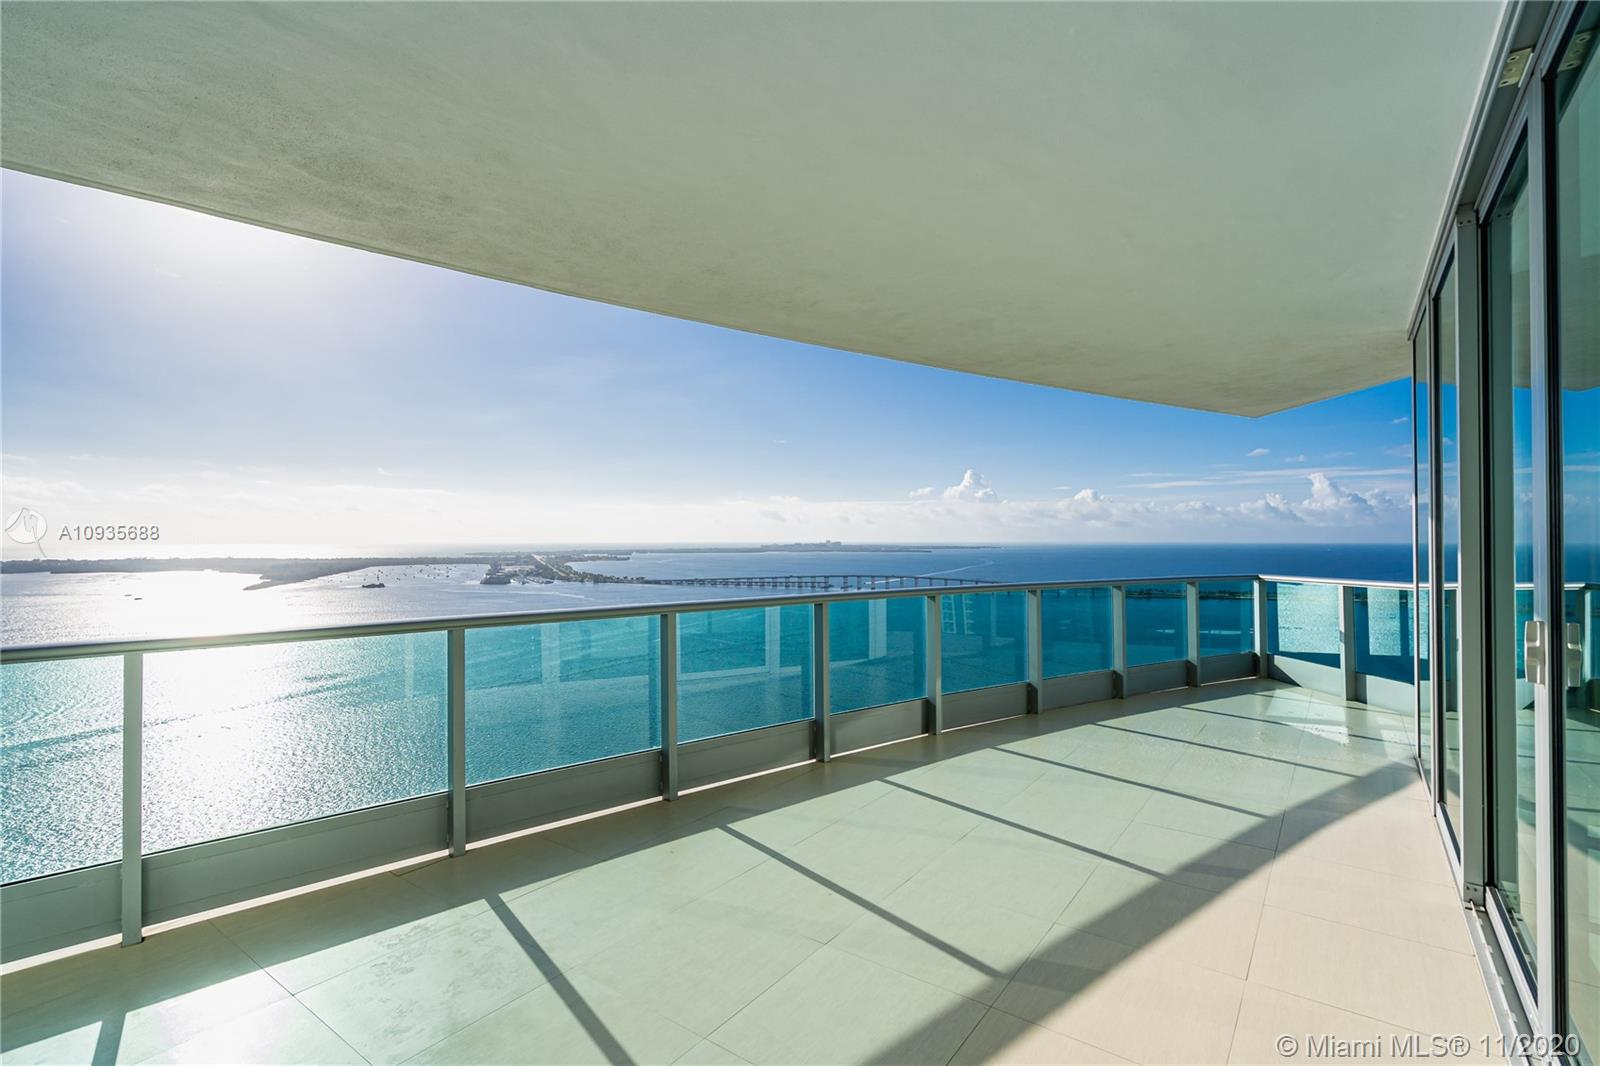 Breathtaking water views from this spacious home in the sky with private elevators! A must see!  Featuring 4-bedrooms & 4.5 baths, this Southeast corner unit has unobstructed breathtaking direct water and city views. This home flows all the way from the east to the west of the building and provides you with 270 degree views.  This light filled home features modern beige tile floors, gourmet/ Italian cabinetry with stainless steel SubZero refrigerator and Miele appliances.   Three balconies with panoramic views. Two parking spots plus free valet services are also included. The amenities are first-class offering a Full Gym, Health Spa, Club Room, Roof-top Party Room, infinity edge waterfront pool, cabanas & jacuzzi.   Vacant, easy to show!! Will not last! Now accepting Bitcoin.